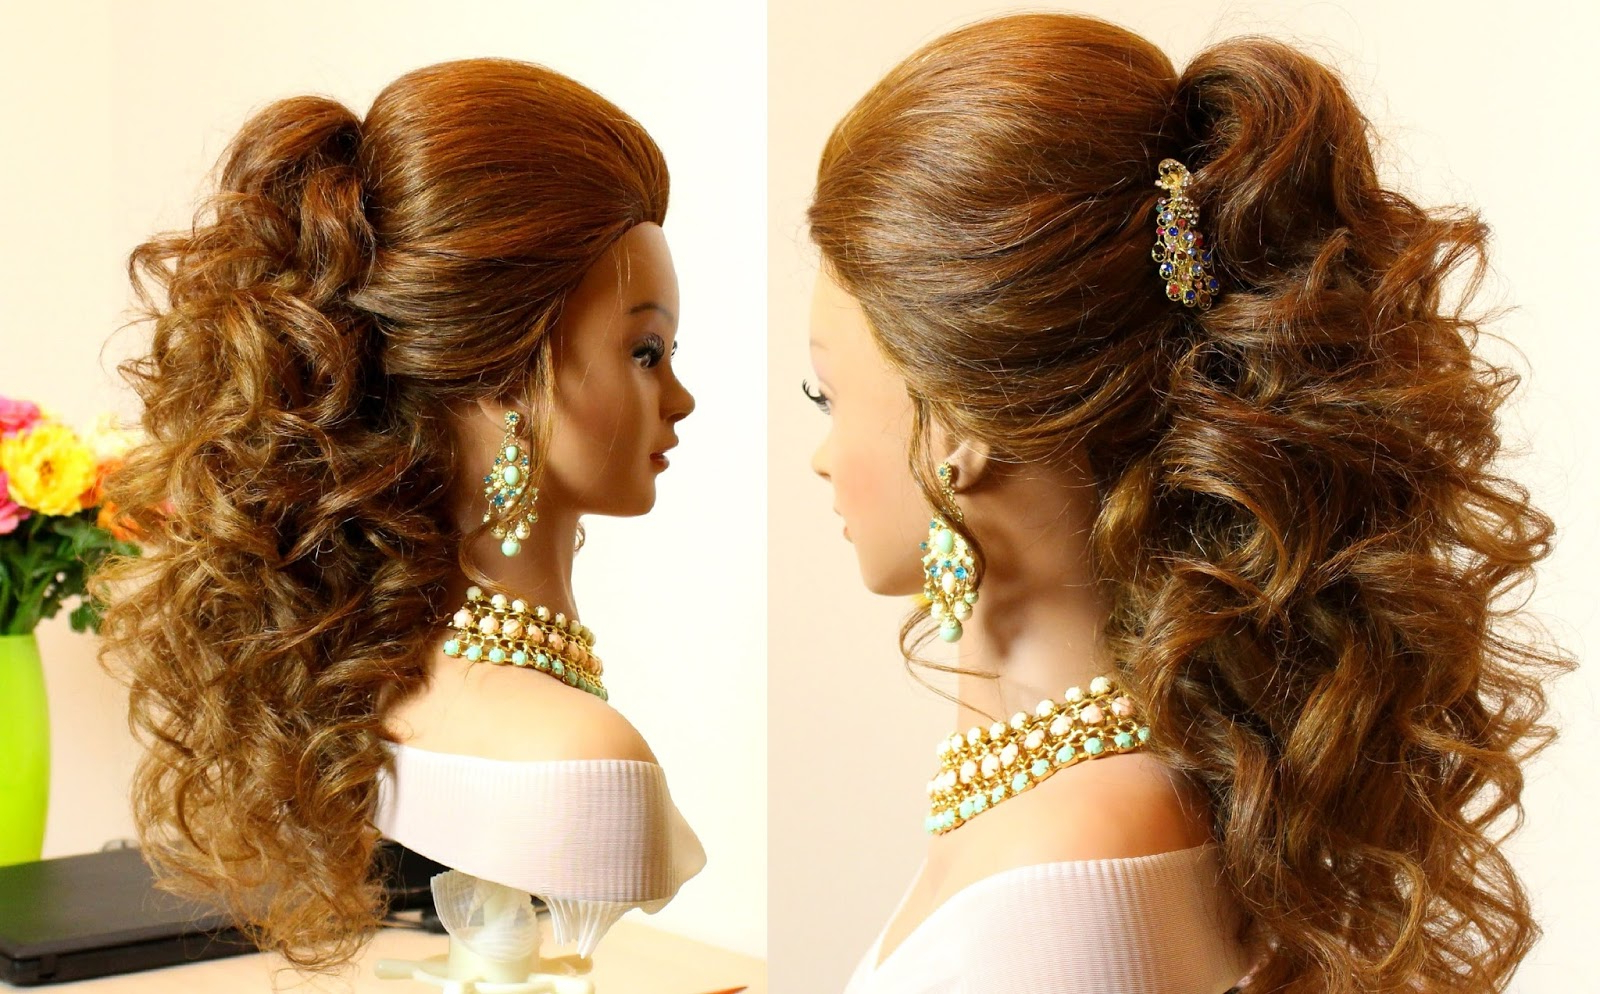 Hairstylo Pertaining To Famous Elegant Messy Updo Hairstyles On Curly Hair (View 11 of 20)